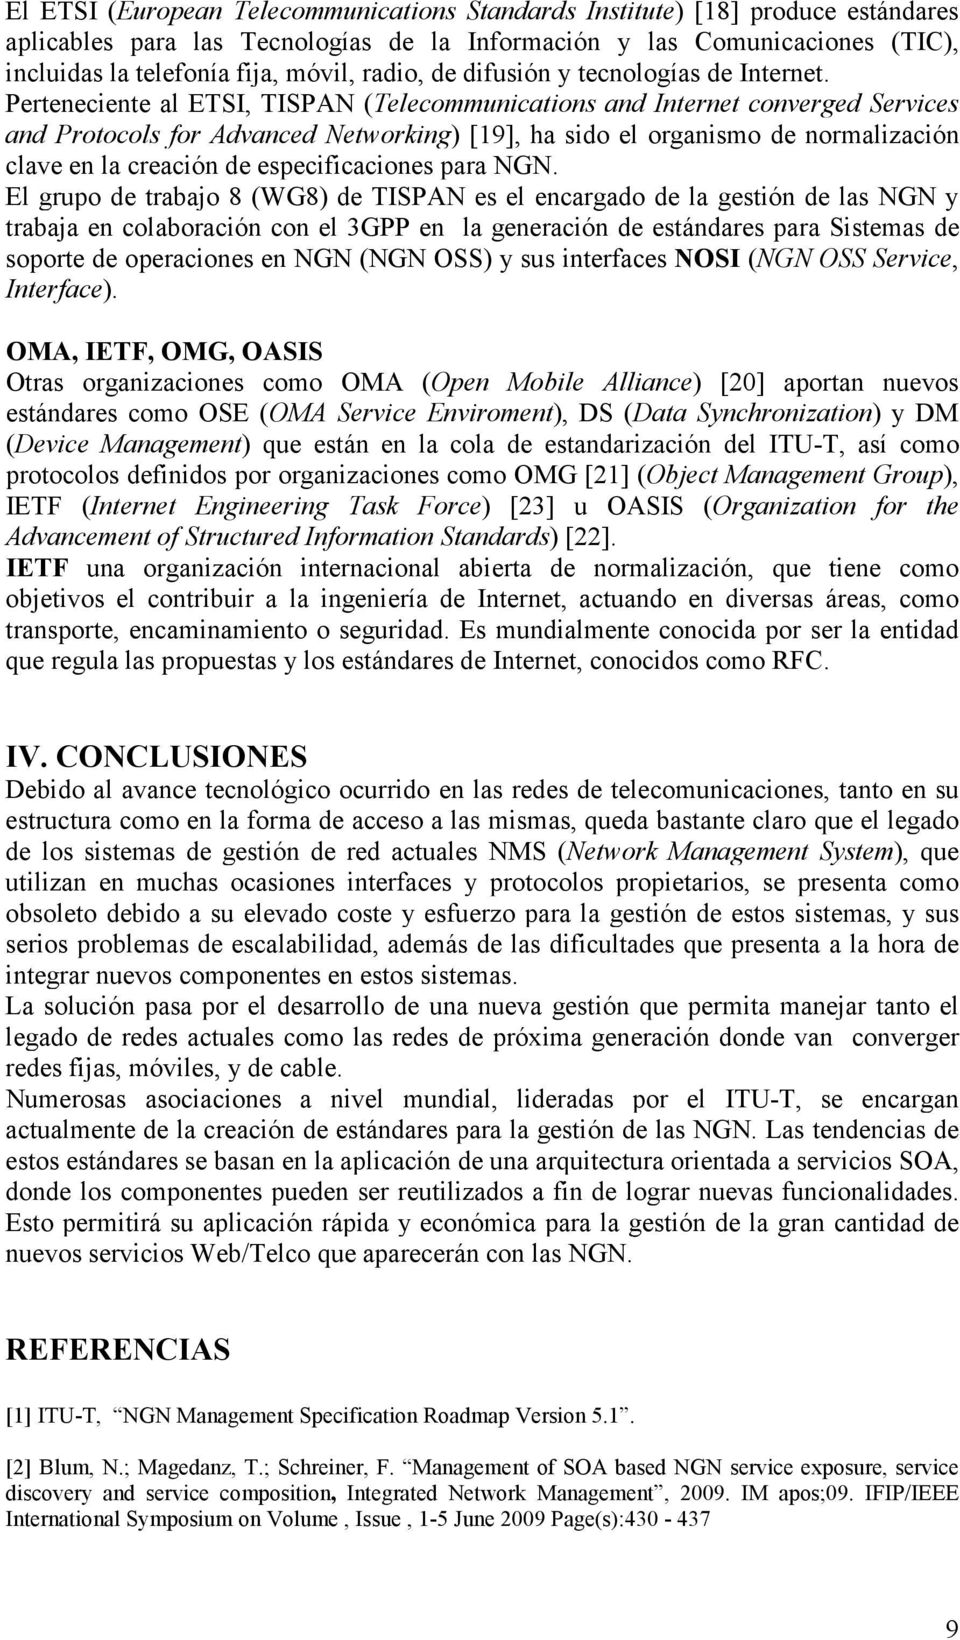 Perteneciente al ETSI, TISPAN (Telecommunications and Internet converged Services and Protocols for Advanced Networking) [19], ha sido el organismo de normalización clave en la creación de